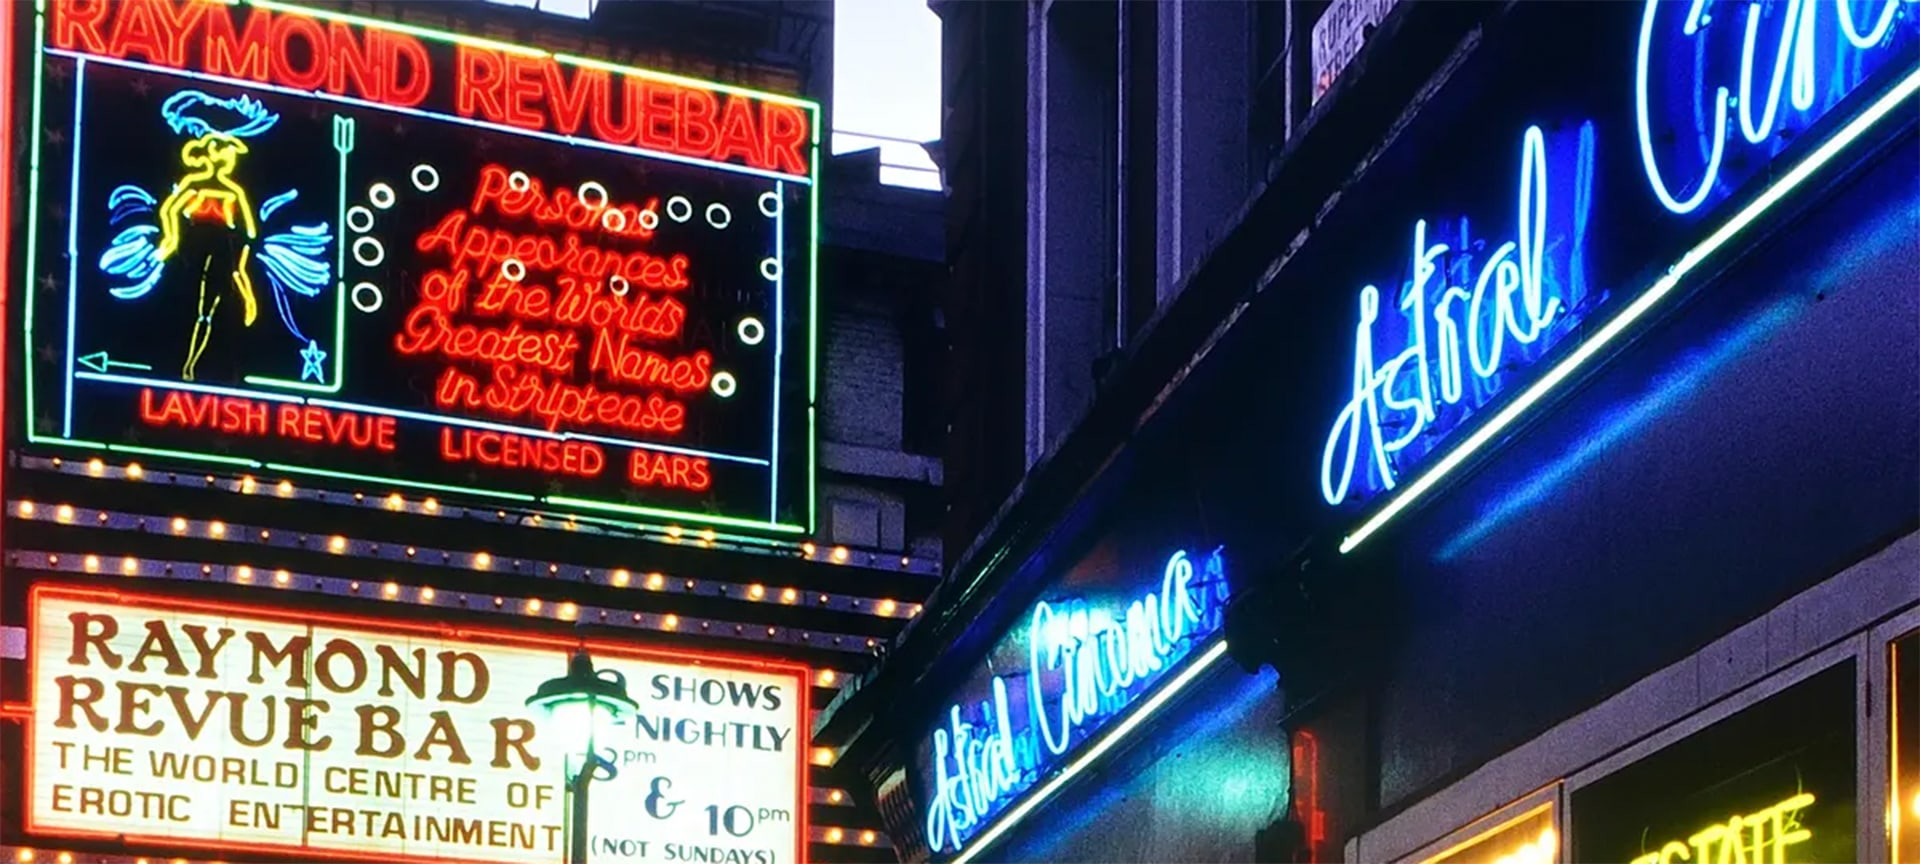 For much of the 20th century the streets of Soho were awash with dazzling neon displays advertising the many clubs, adult shops and saucy cinemas which characterised the area in its seedy heyday.